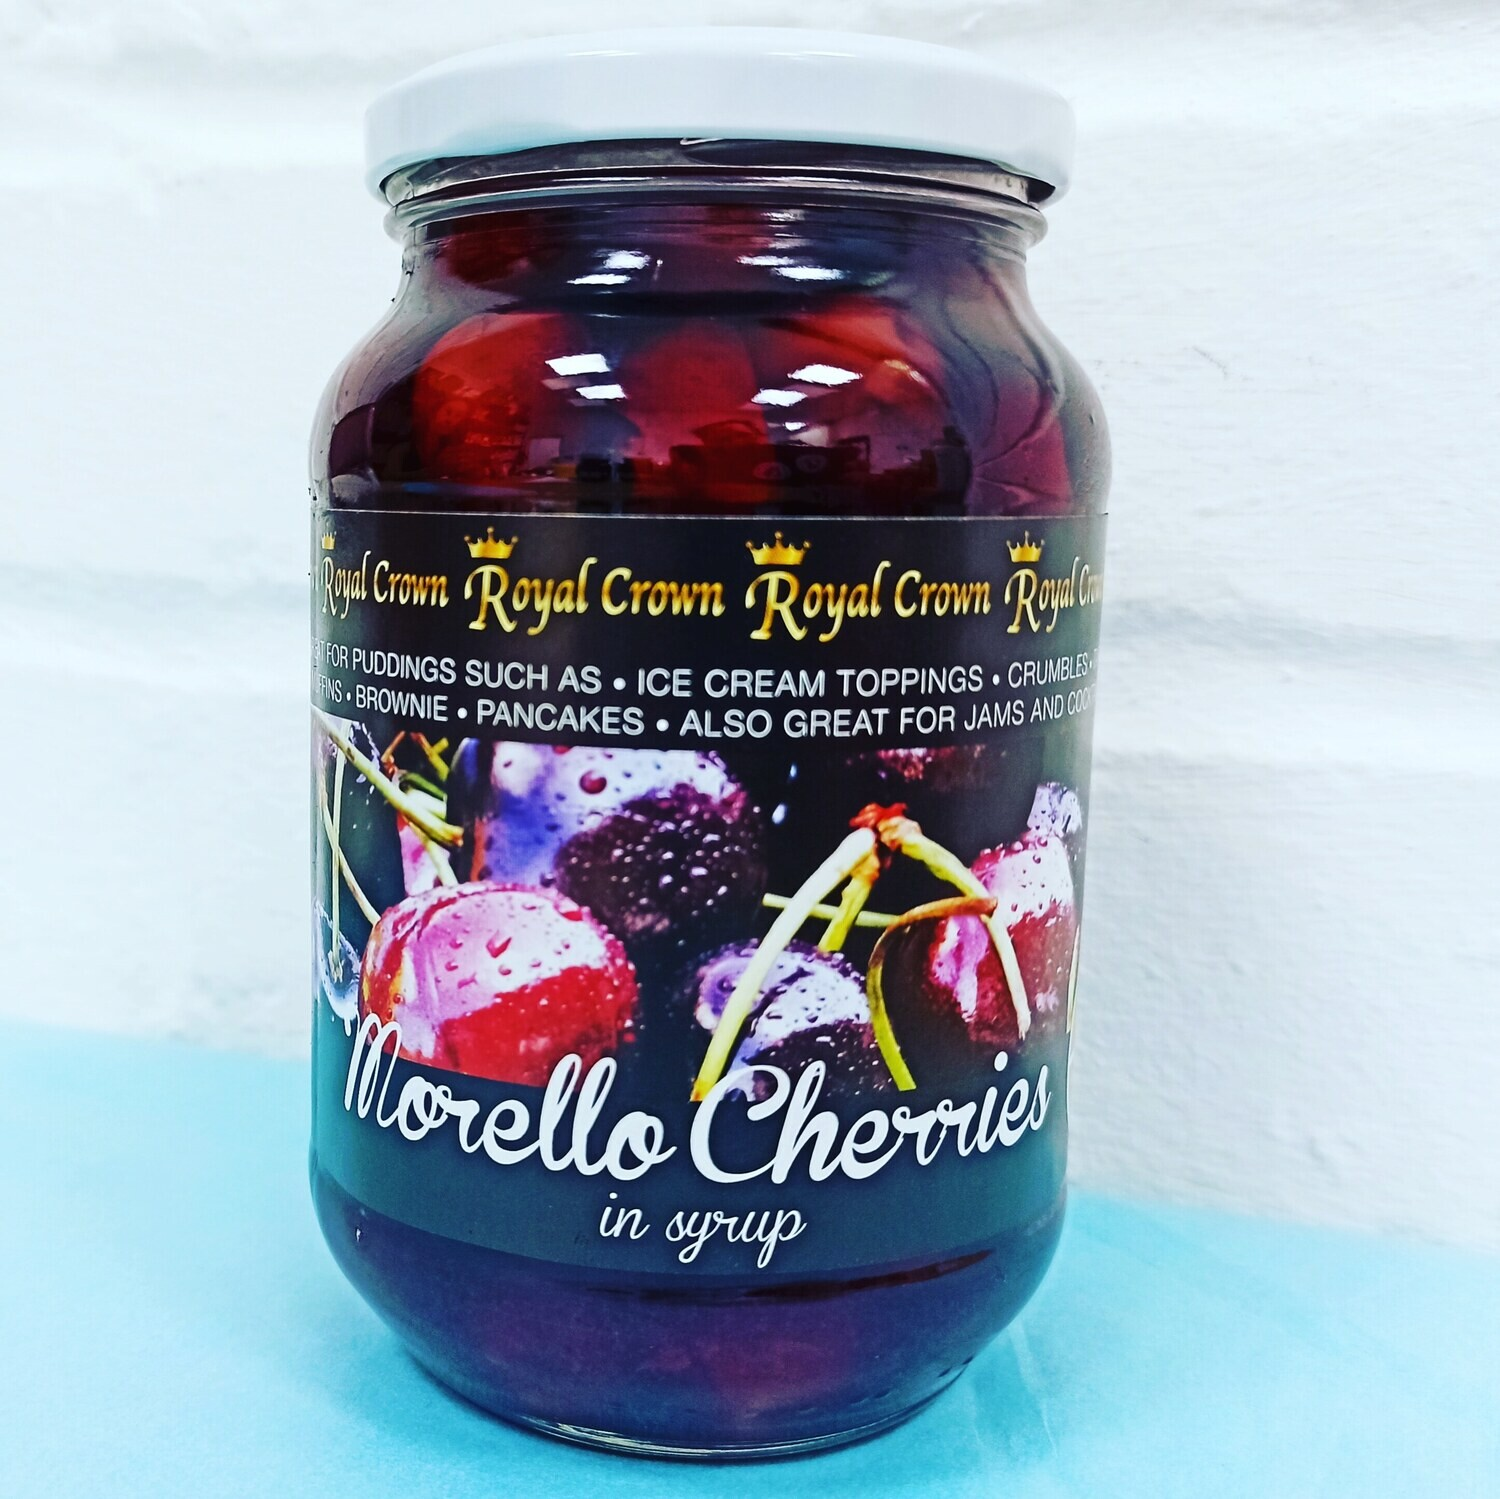 Morello cherries in Syrup